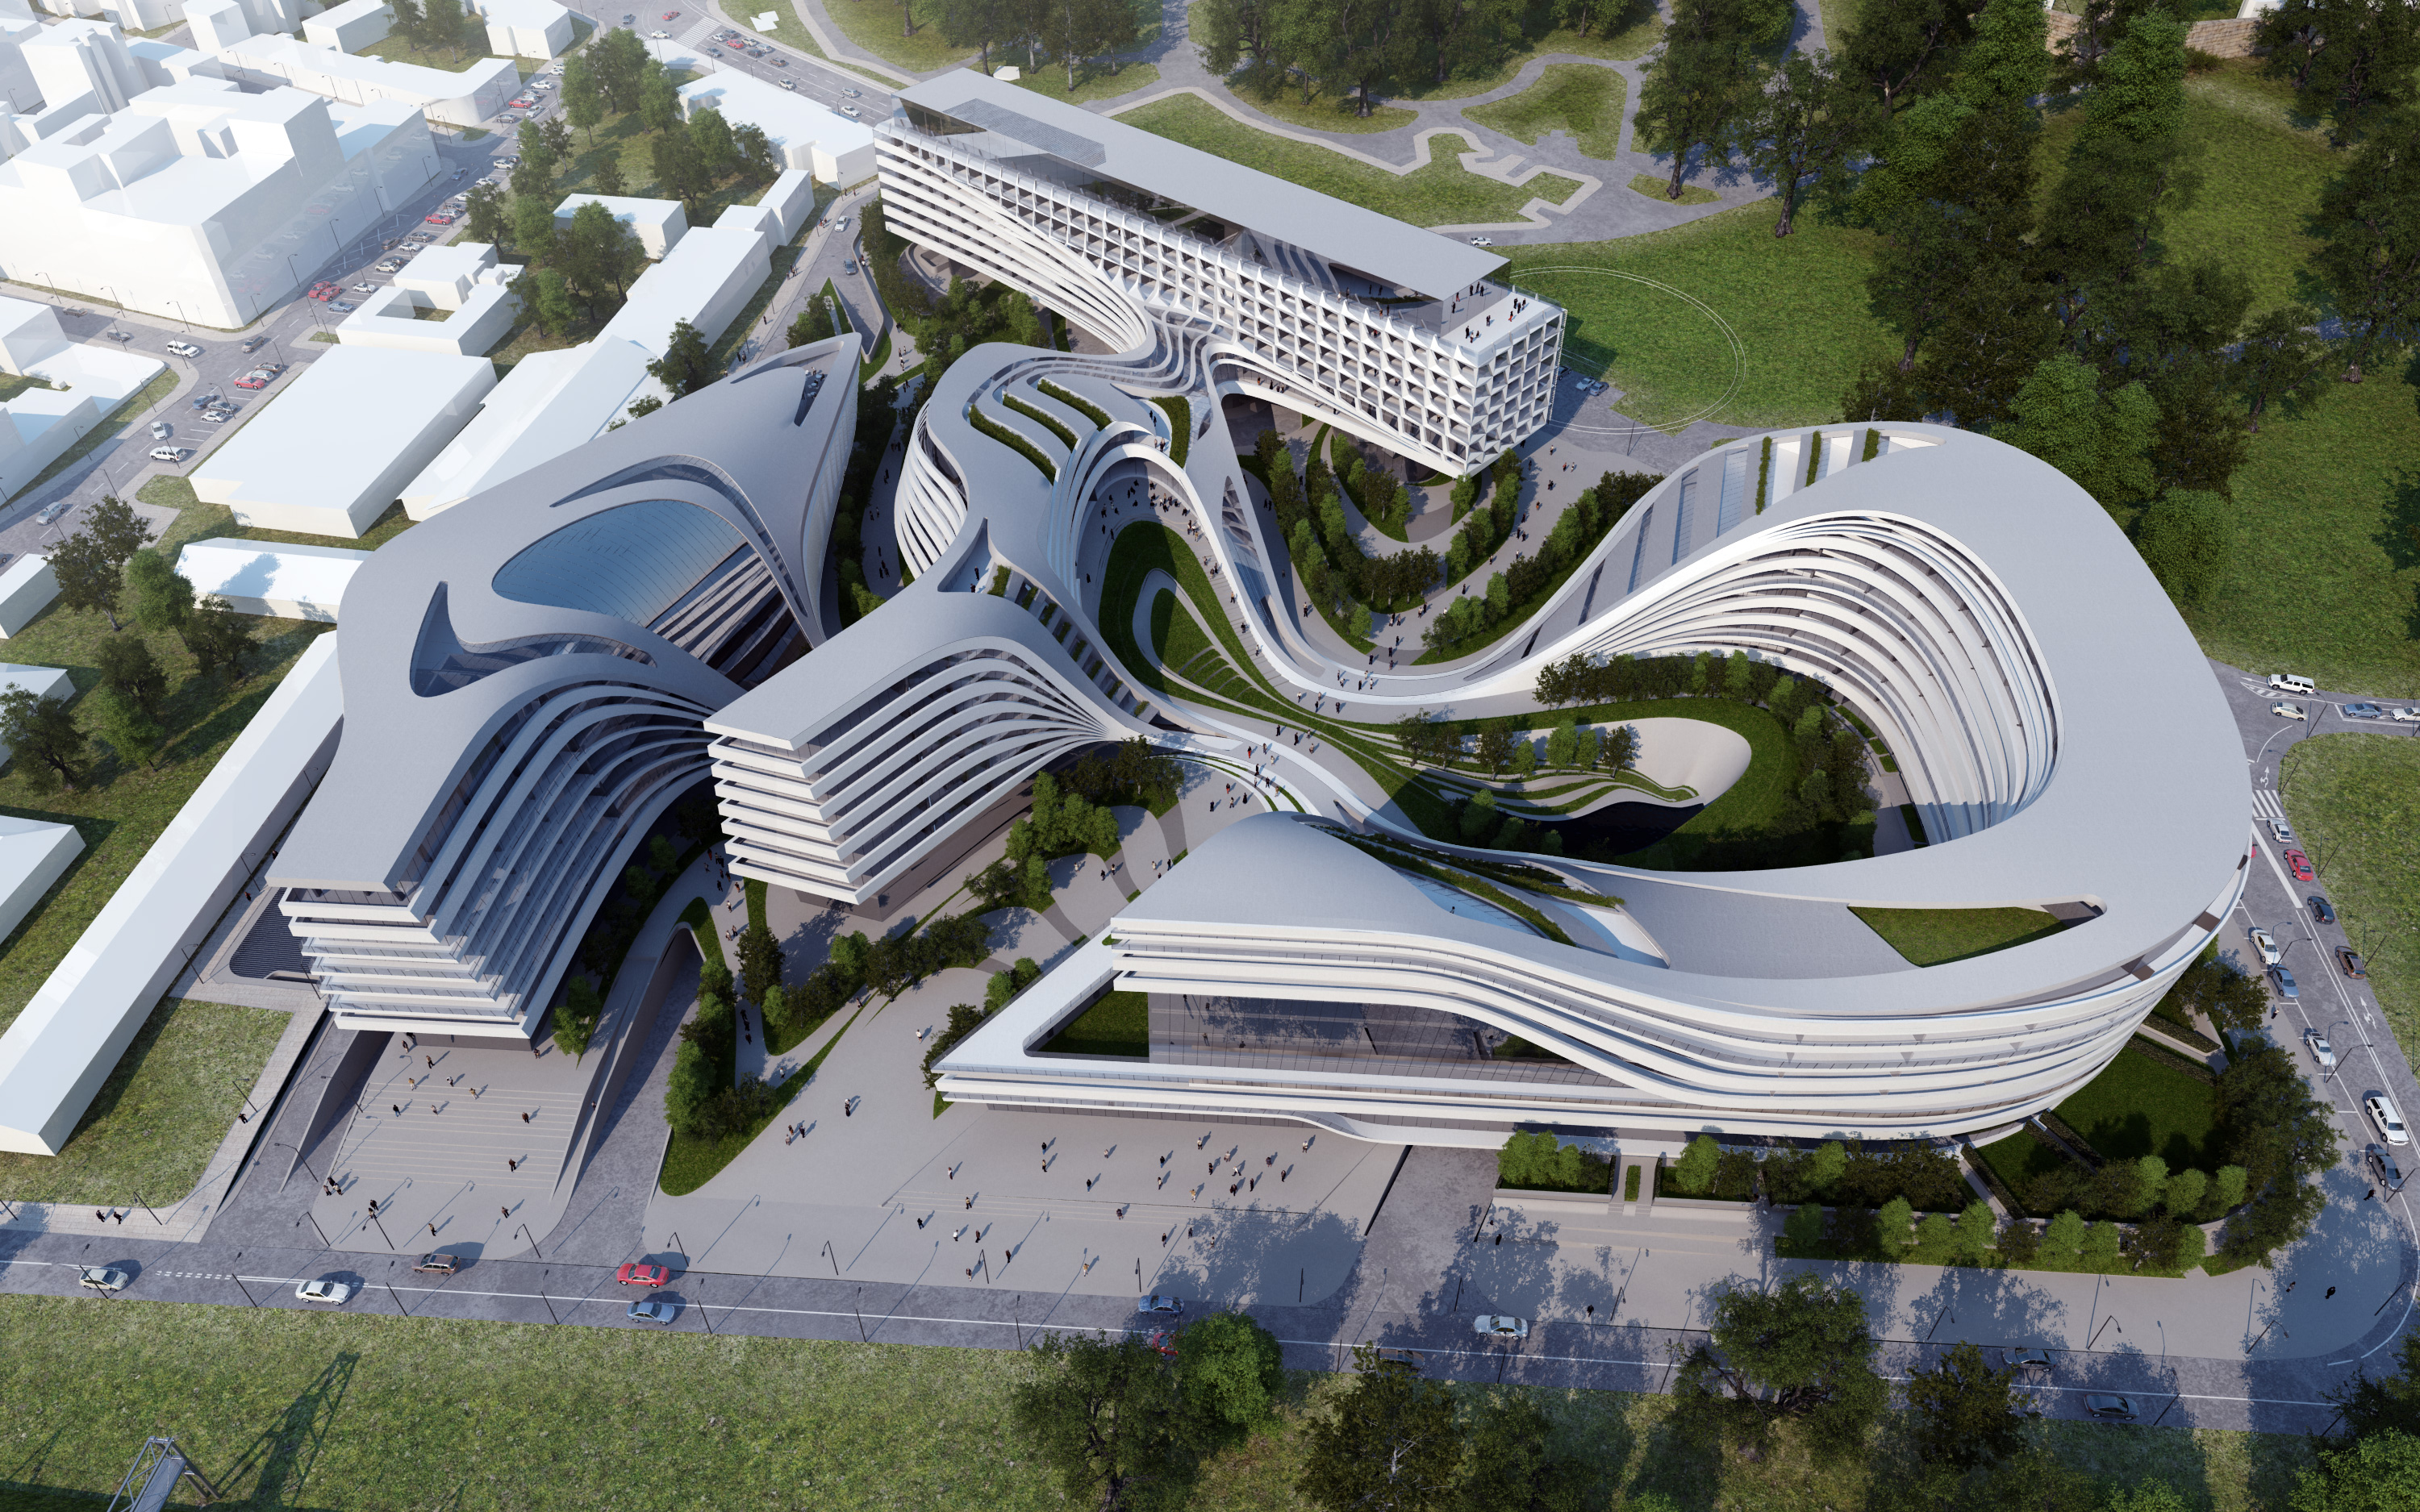 Beko masterplan belgrade zaha hadid architects the for Architecture zaha hadid